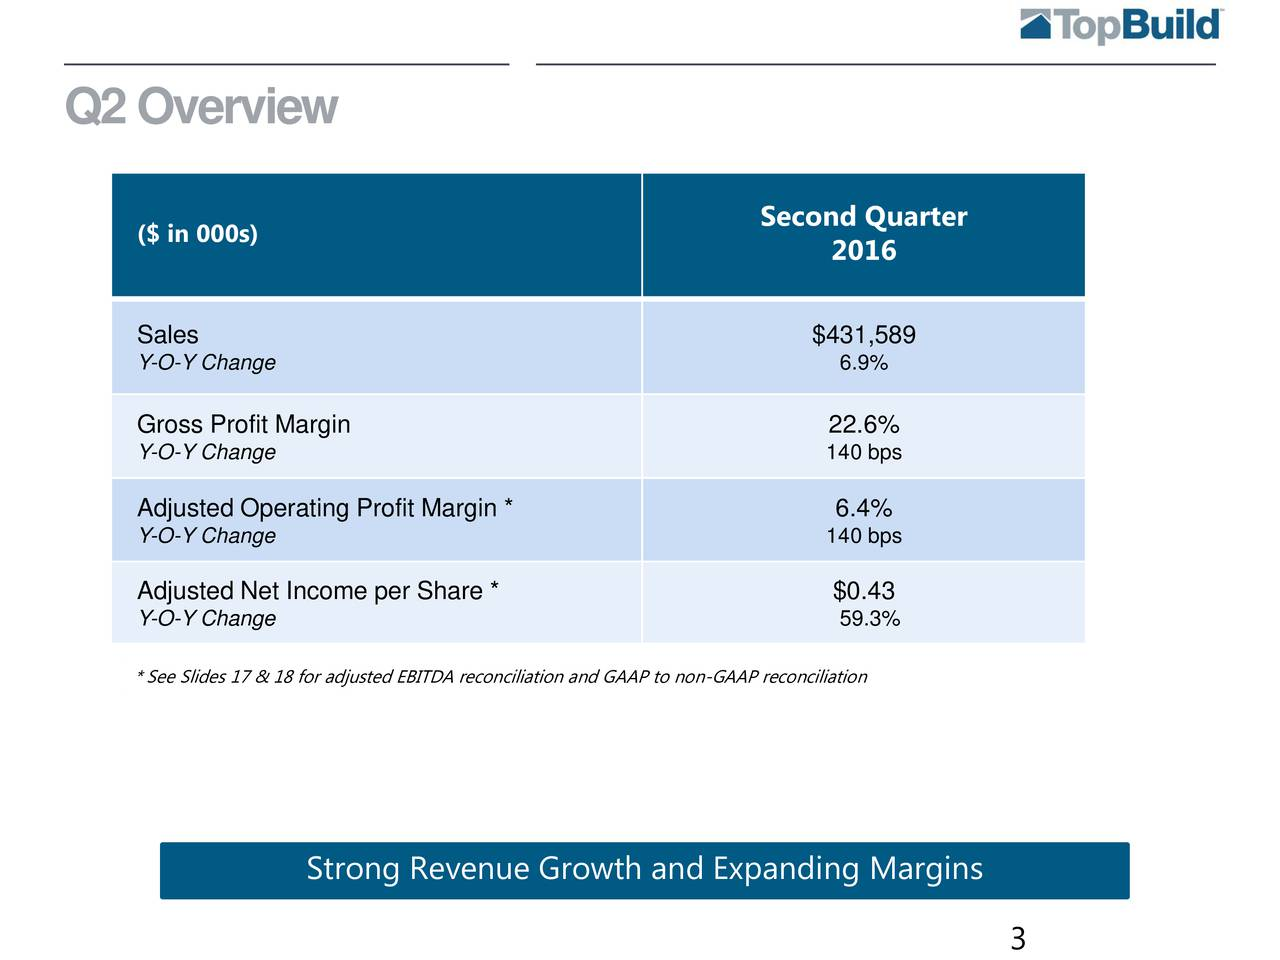 Second Quarter ($ in 000s) 2016 Sales $431,589 Y-O-Y Change 6.9% Gross Profit Margin 22.6% Y-O-Y Change 140 bps Adjusted Operating Profit Margin * 6.4% Y-O-Y Change 140 bps Adjusted Net Income per Share * $0.43 Y-O-Y Change 59.3% * See Slides 17 & 18 for adjusted EBITDA reconciliation and GAAP to non-GAAP reconciliation Strong Revenue Growth and Expanding Margins